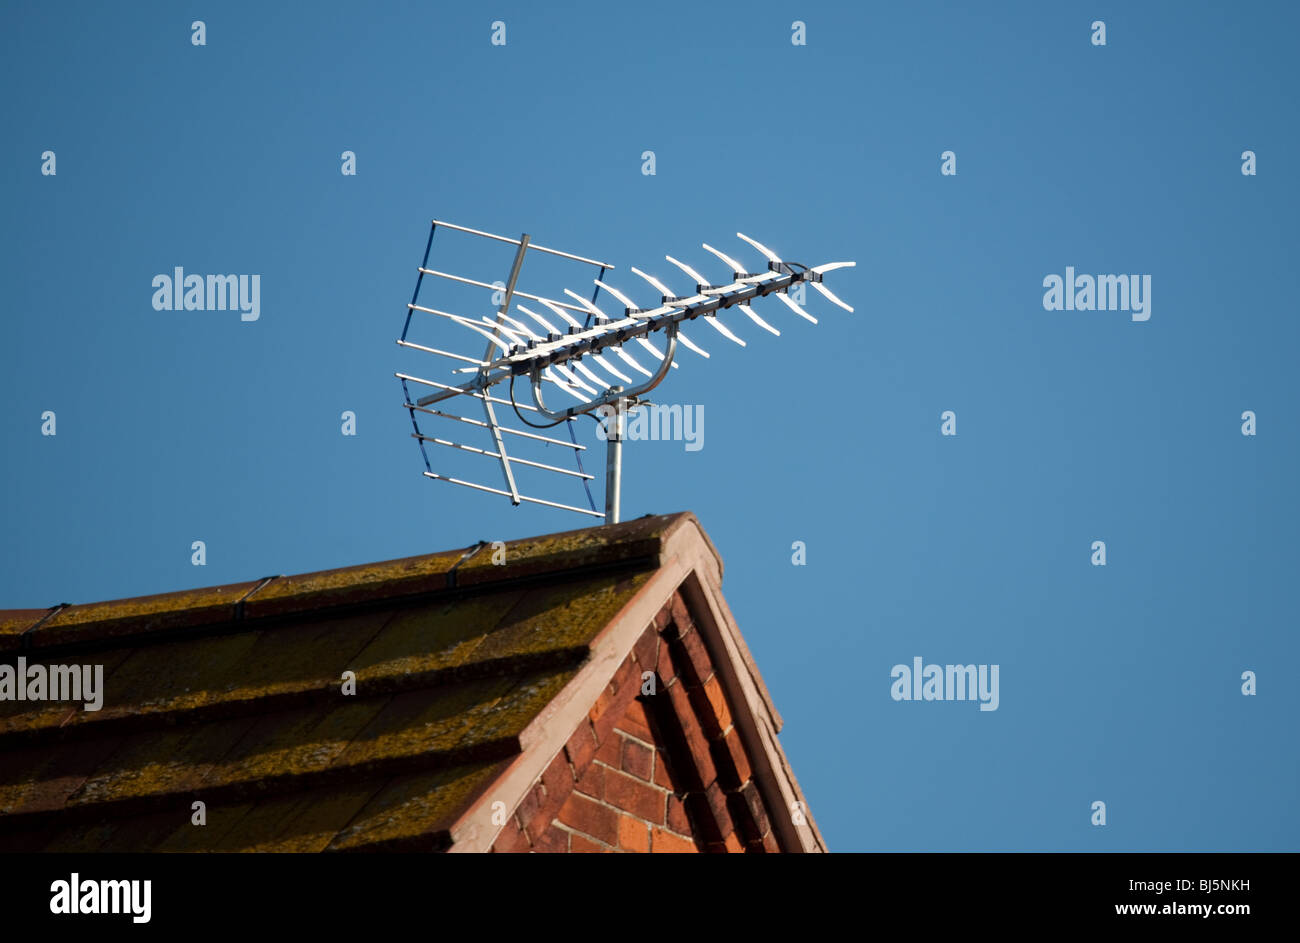 Old fashioned analogue TV aerial on a house roof, Suffolk, UK - Stock Image